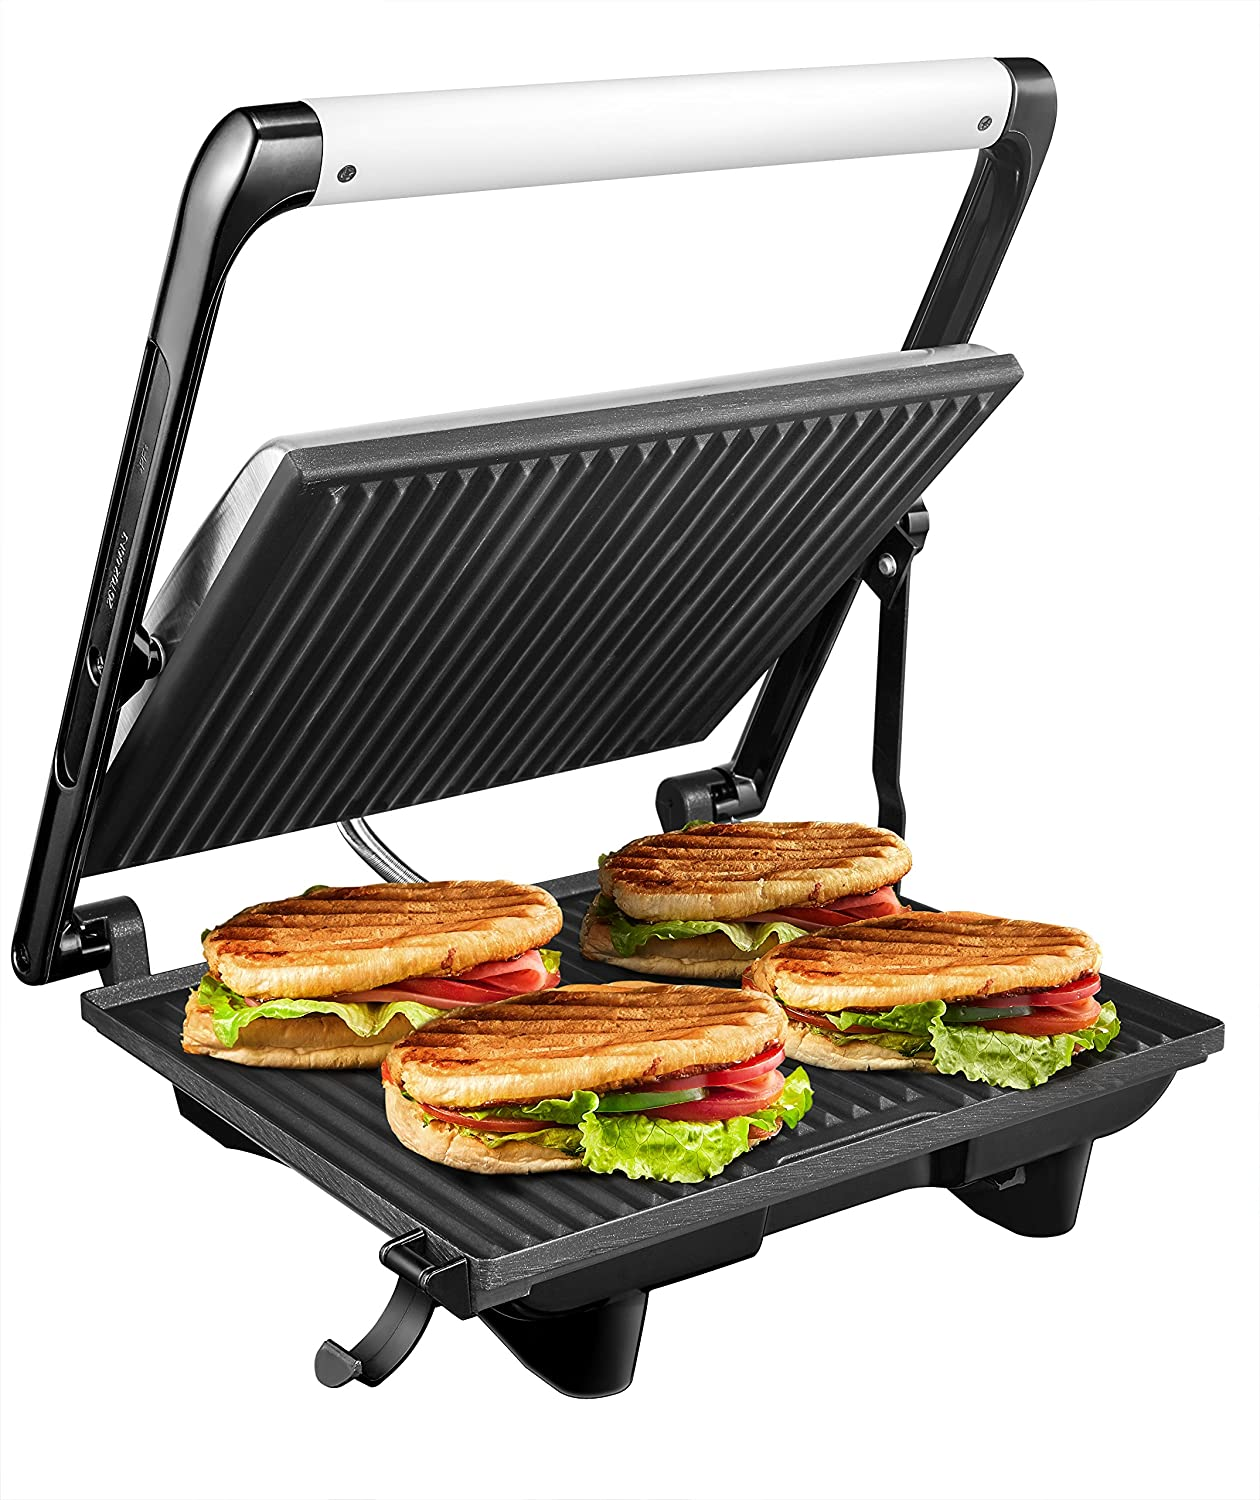 Panini Press Grill Gourmet Sandwich Maker, 11.6